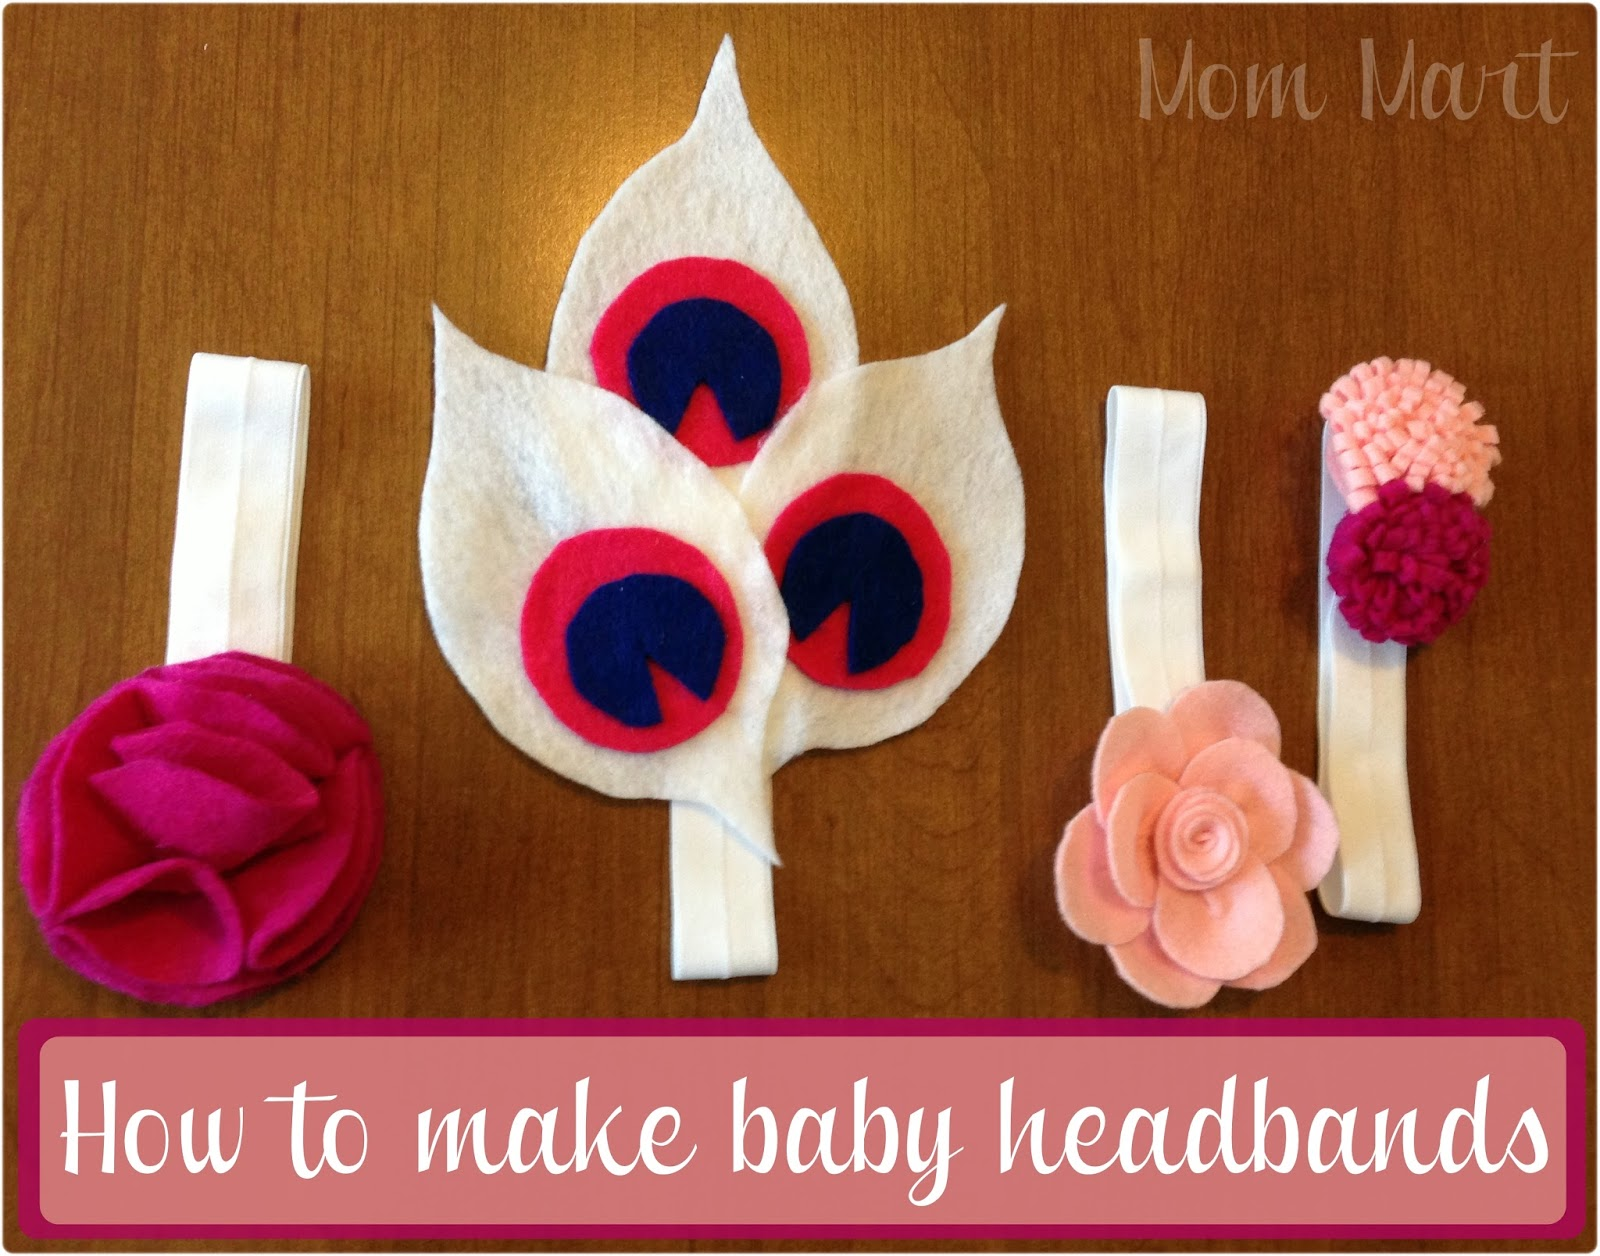 Mom mart diy felt flower baby headbands tutorial how to make felt flower baby headbands solutioingenieria Images